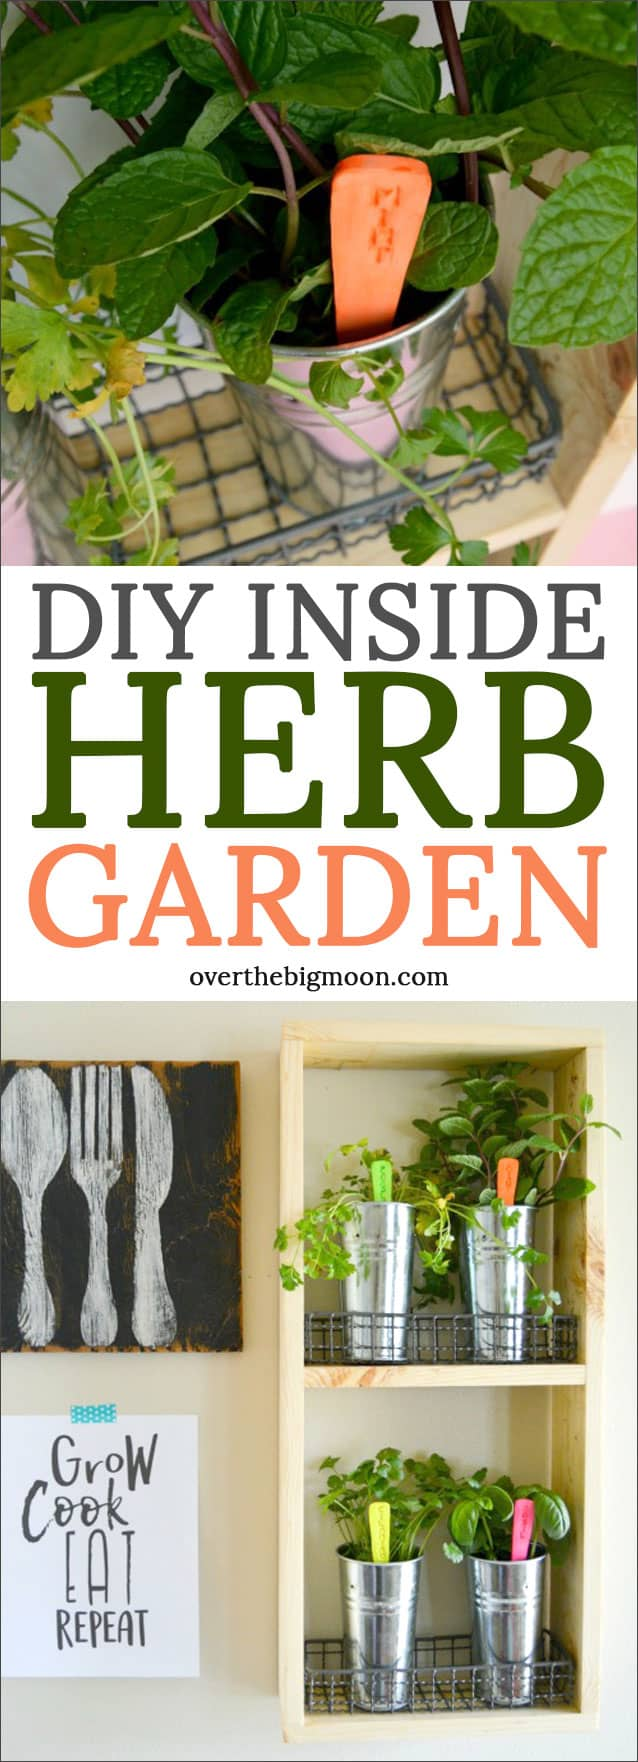 DIY Inside Herb Garden - come check out this easy tutorial! It adds such a great feel to your garden or dining room!! Tutorial at overthebigmoon.com!